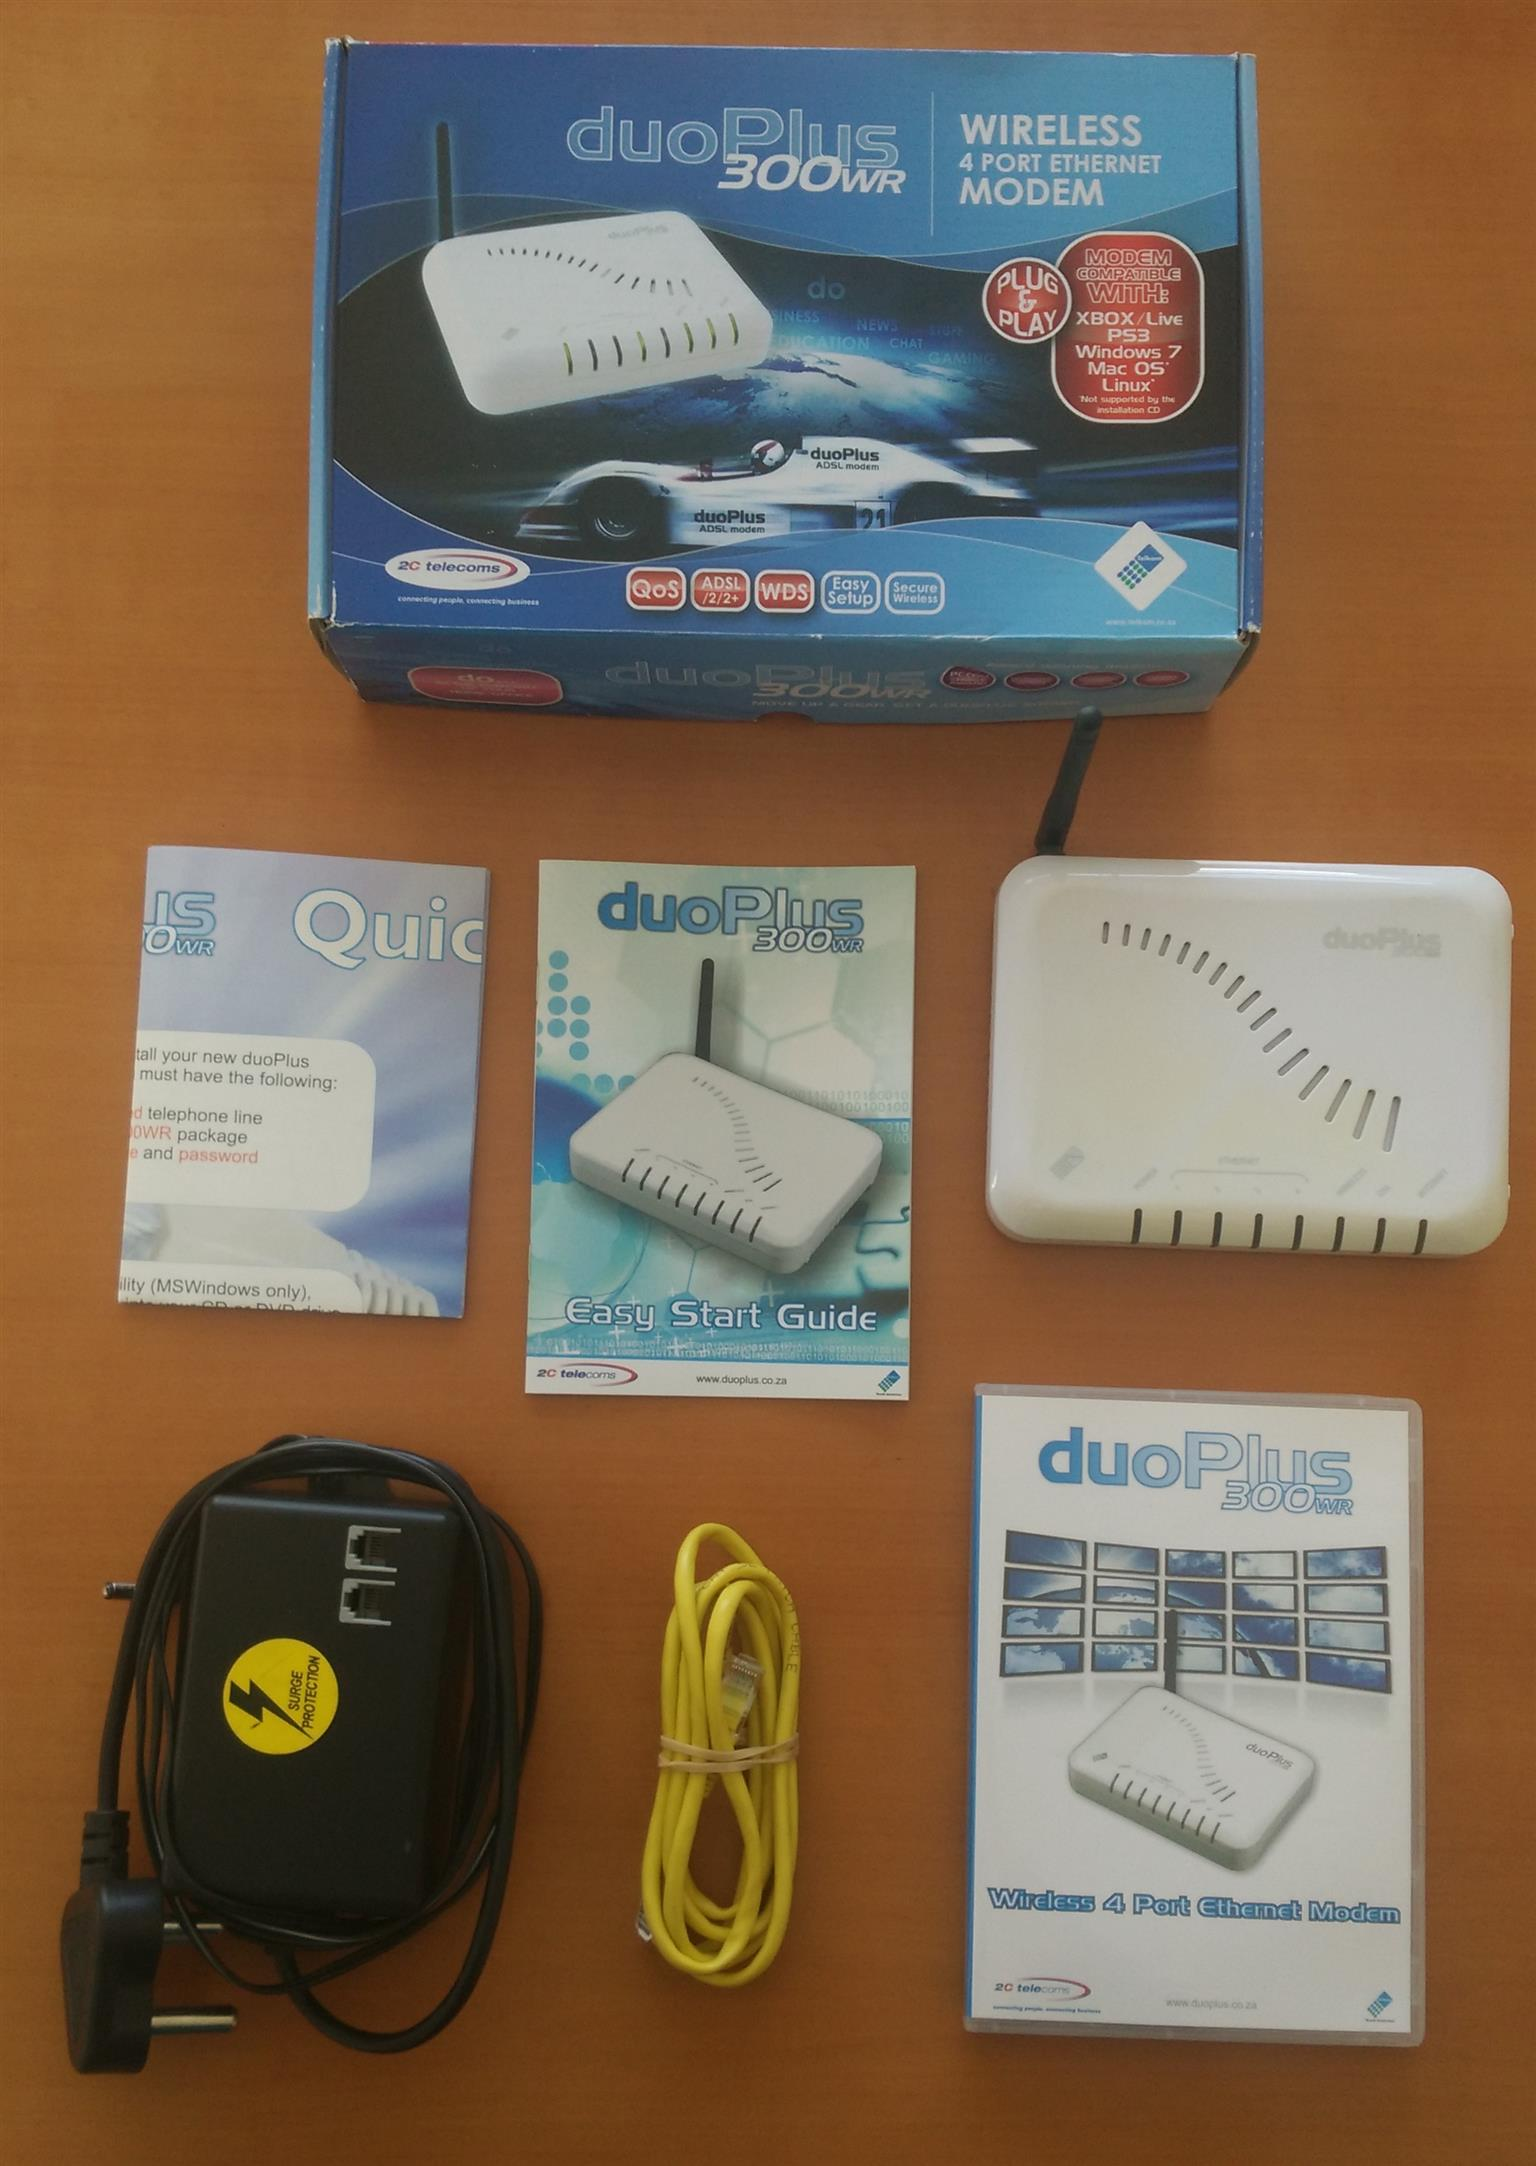 ADSL Modem and Router DuoPlus 300WR